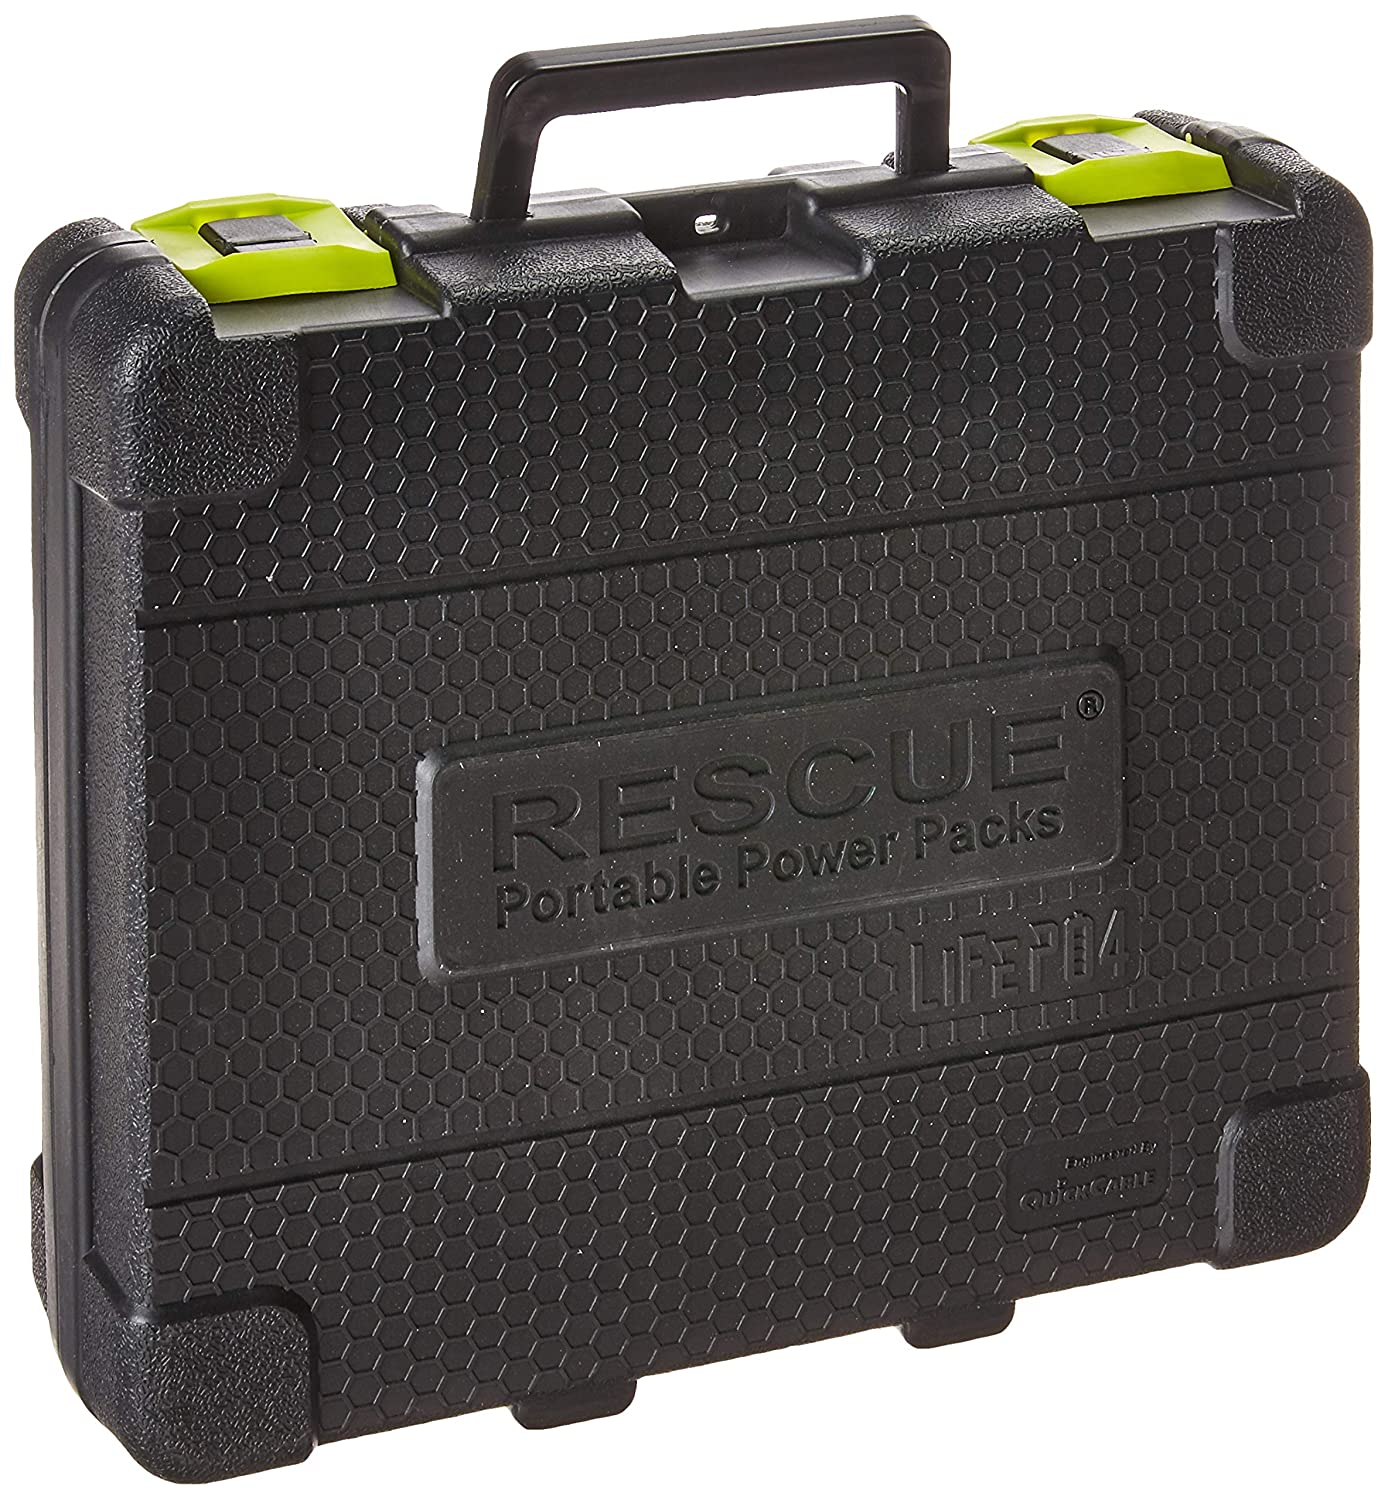 Quick Cable 604022 Rescue Lifepo4 Jump Pack